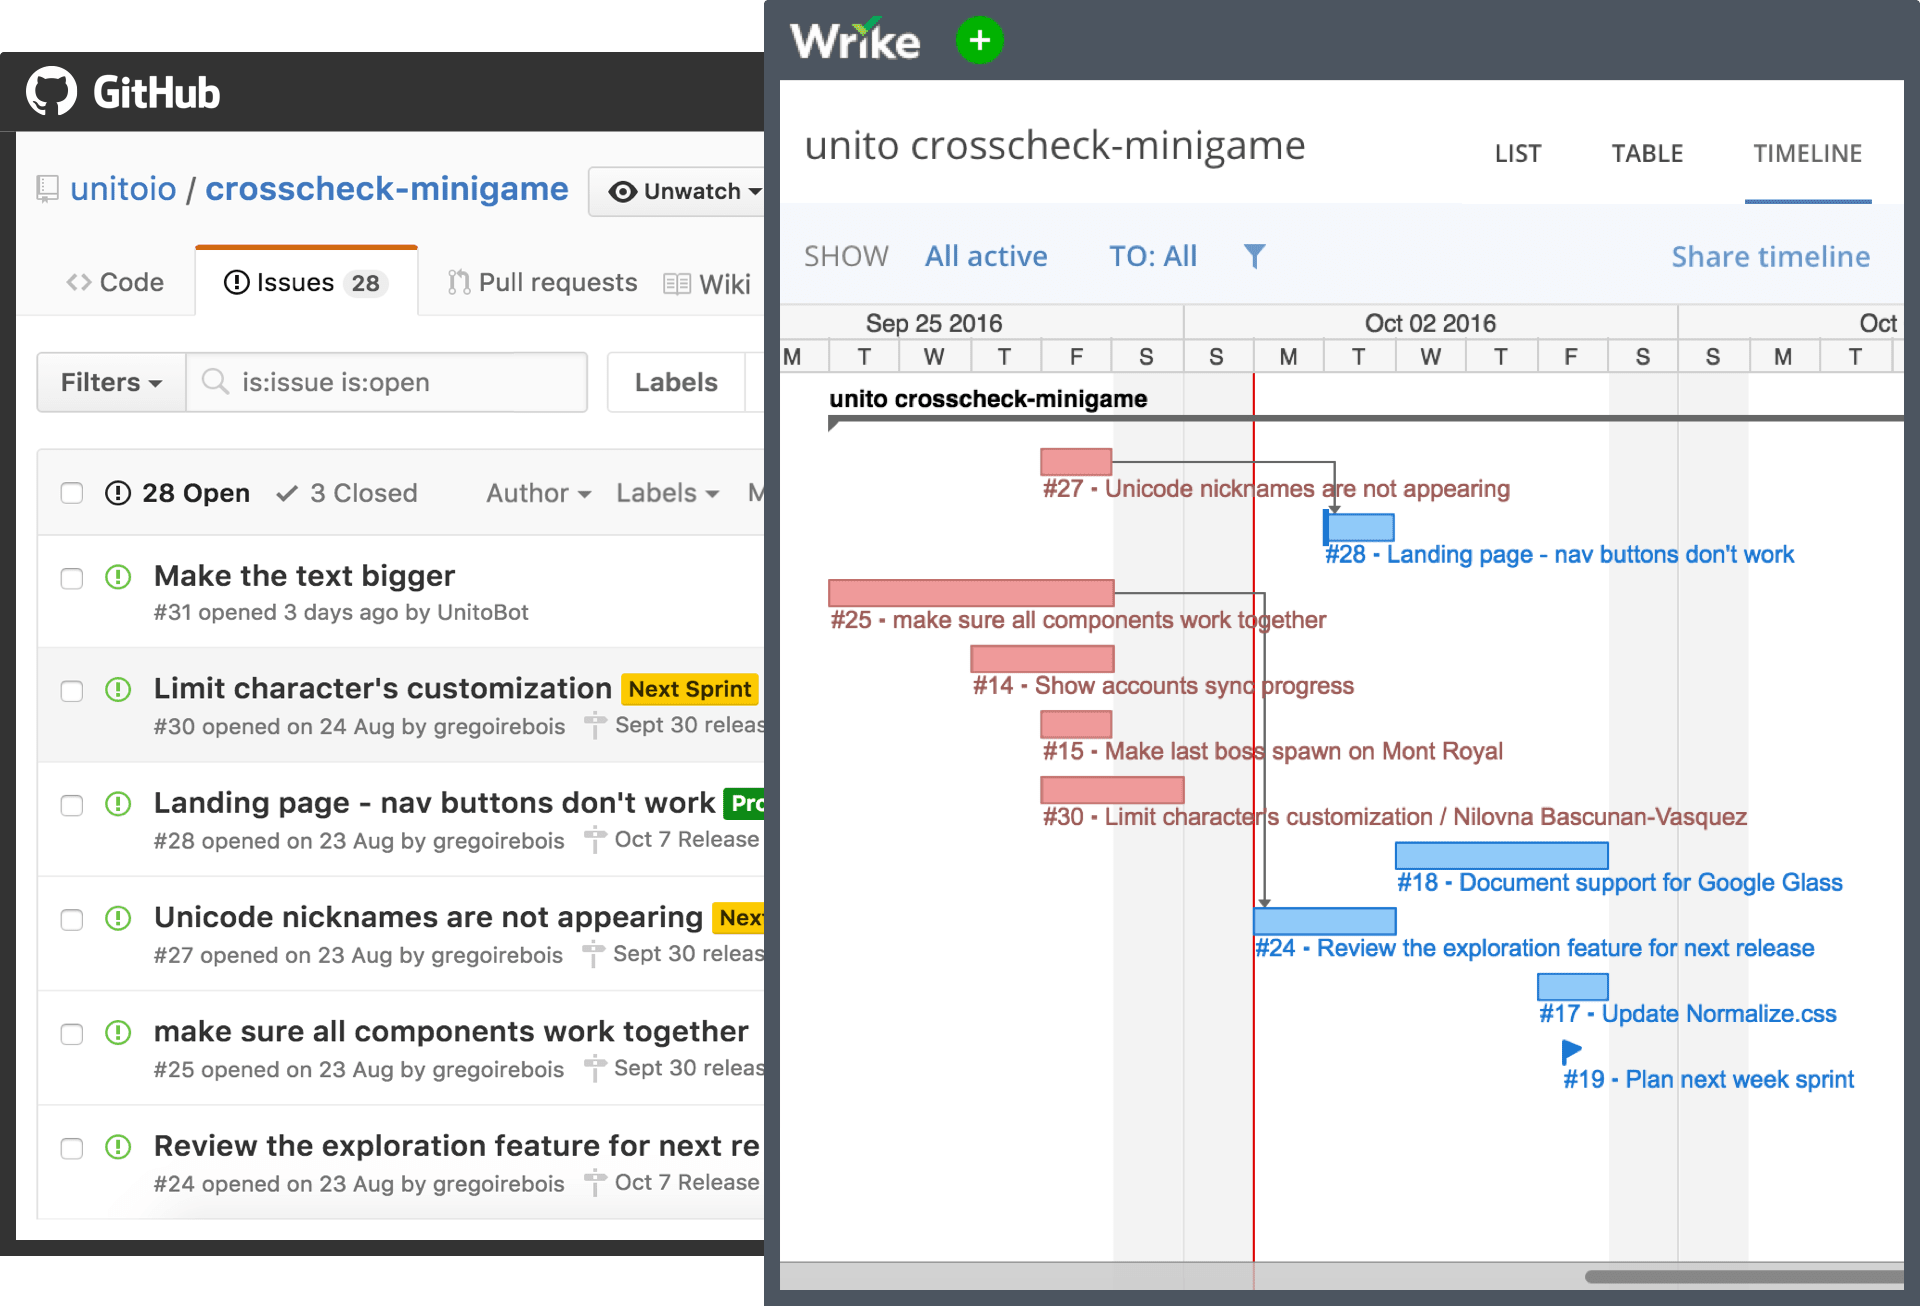 Wrike integration with GitHub